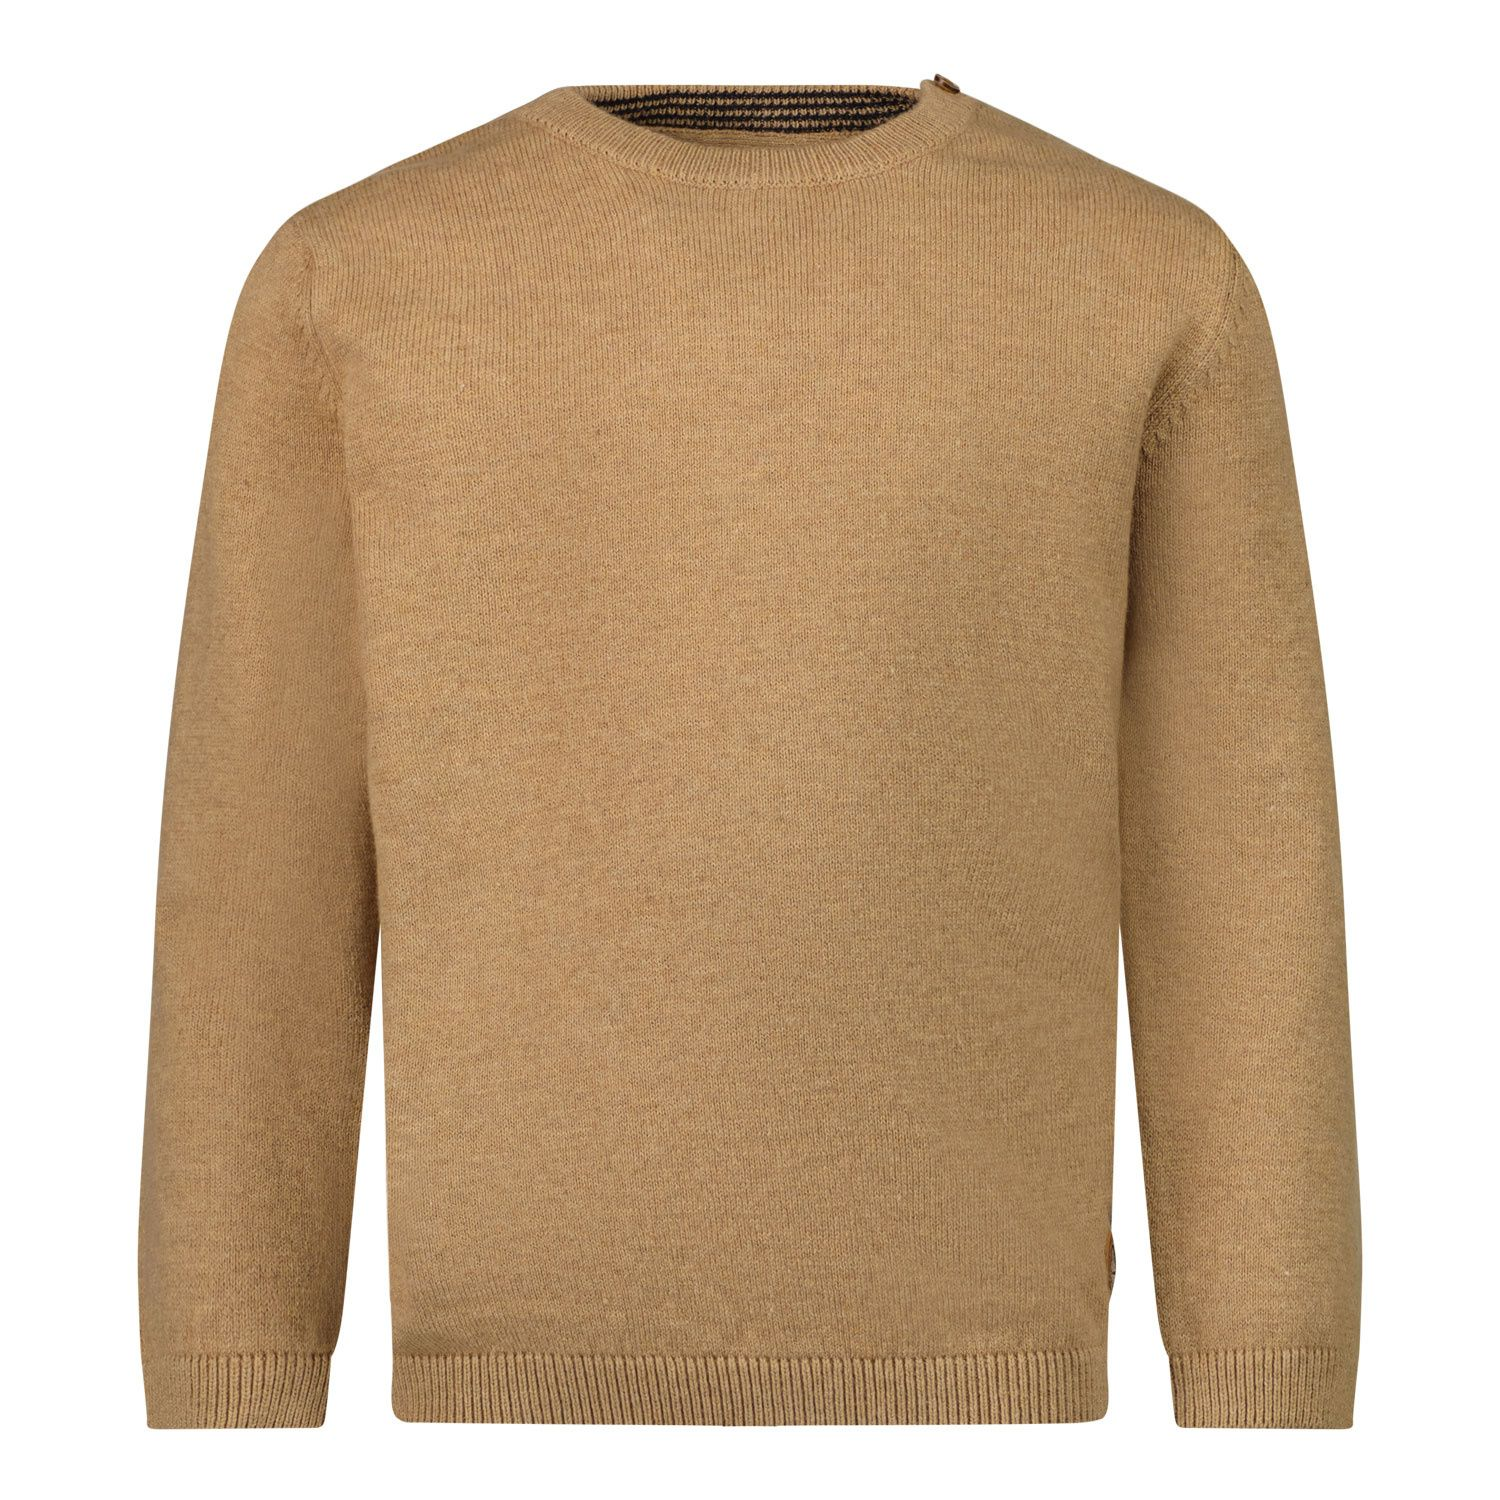 Picture of Mayoral 351 baby sweater beige